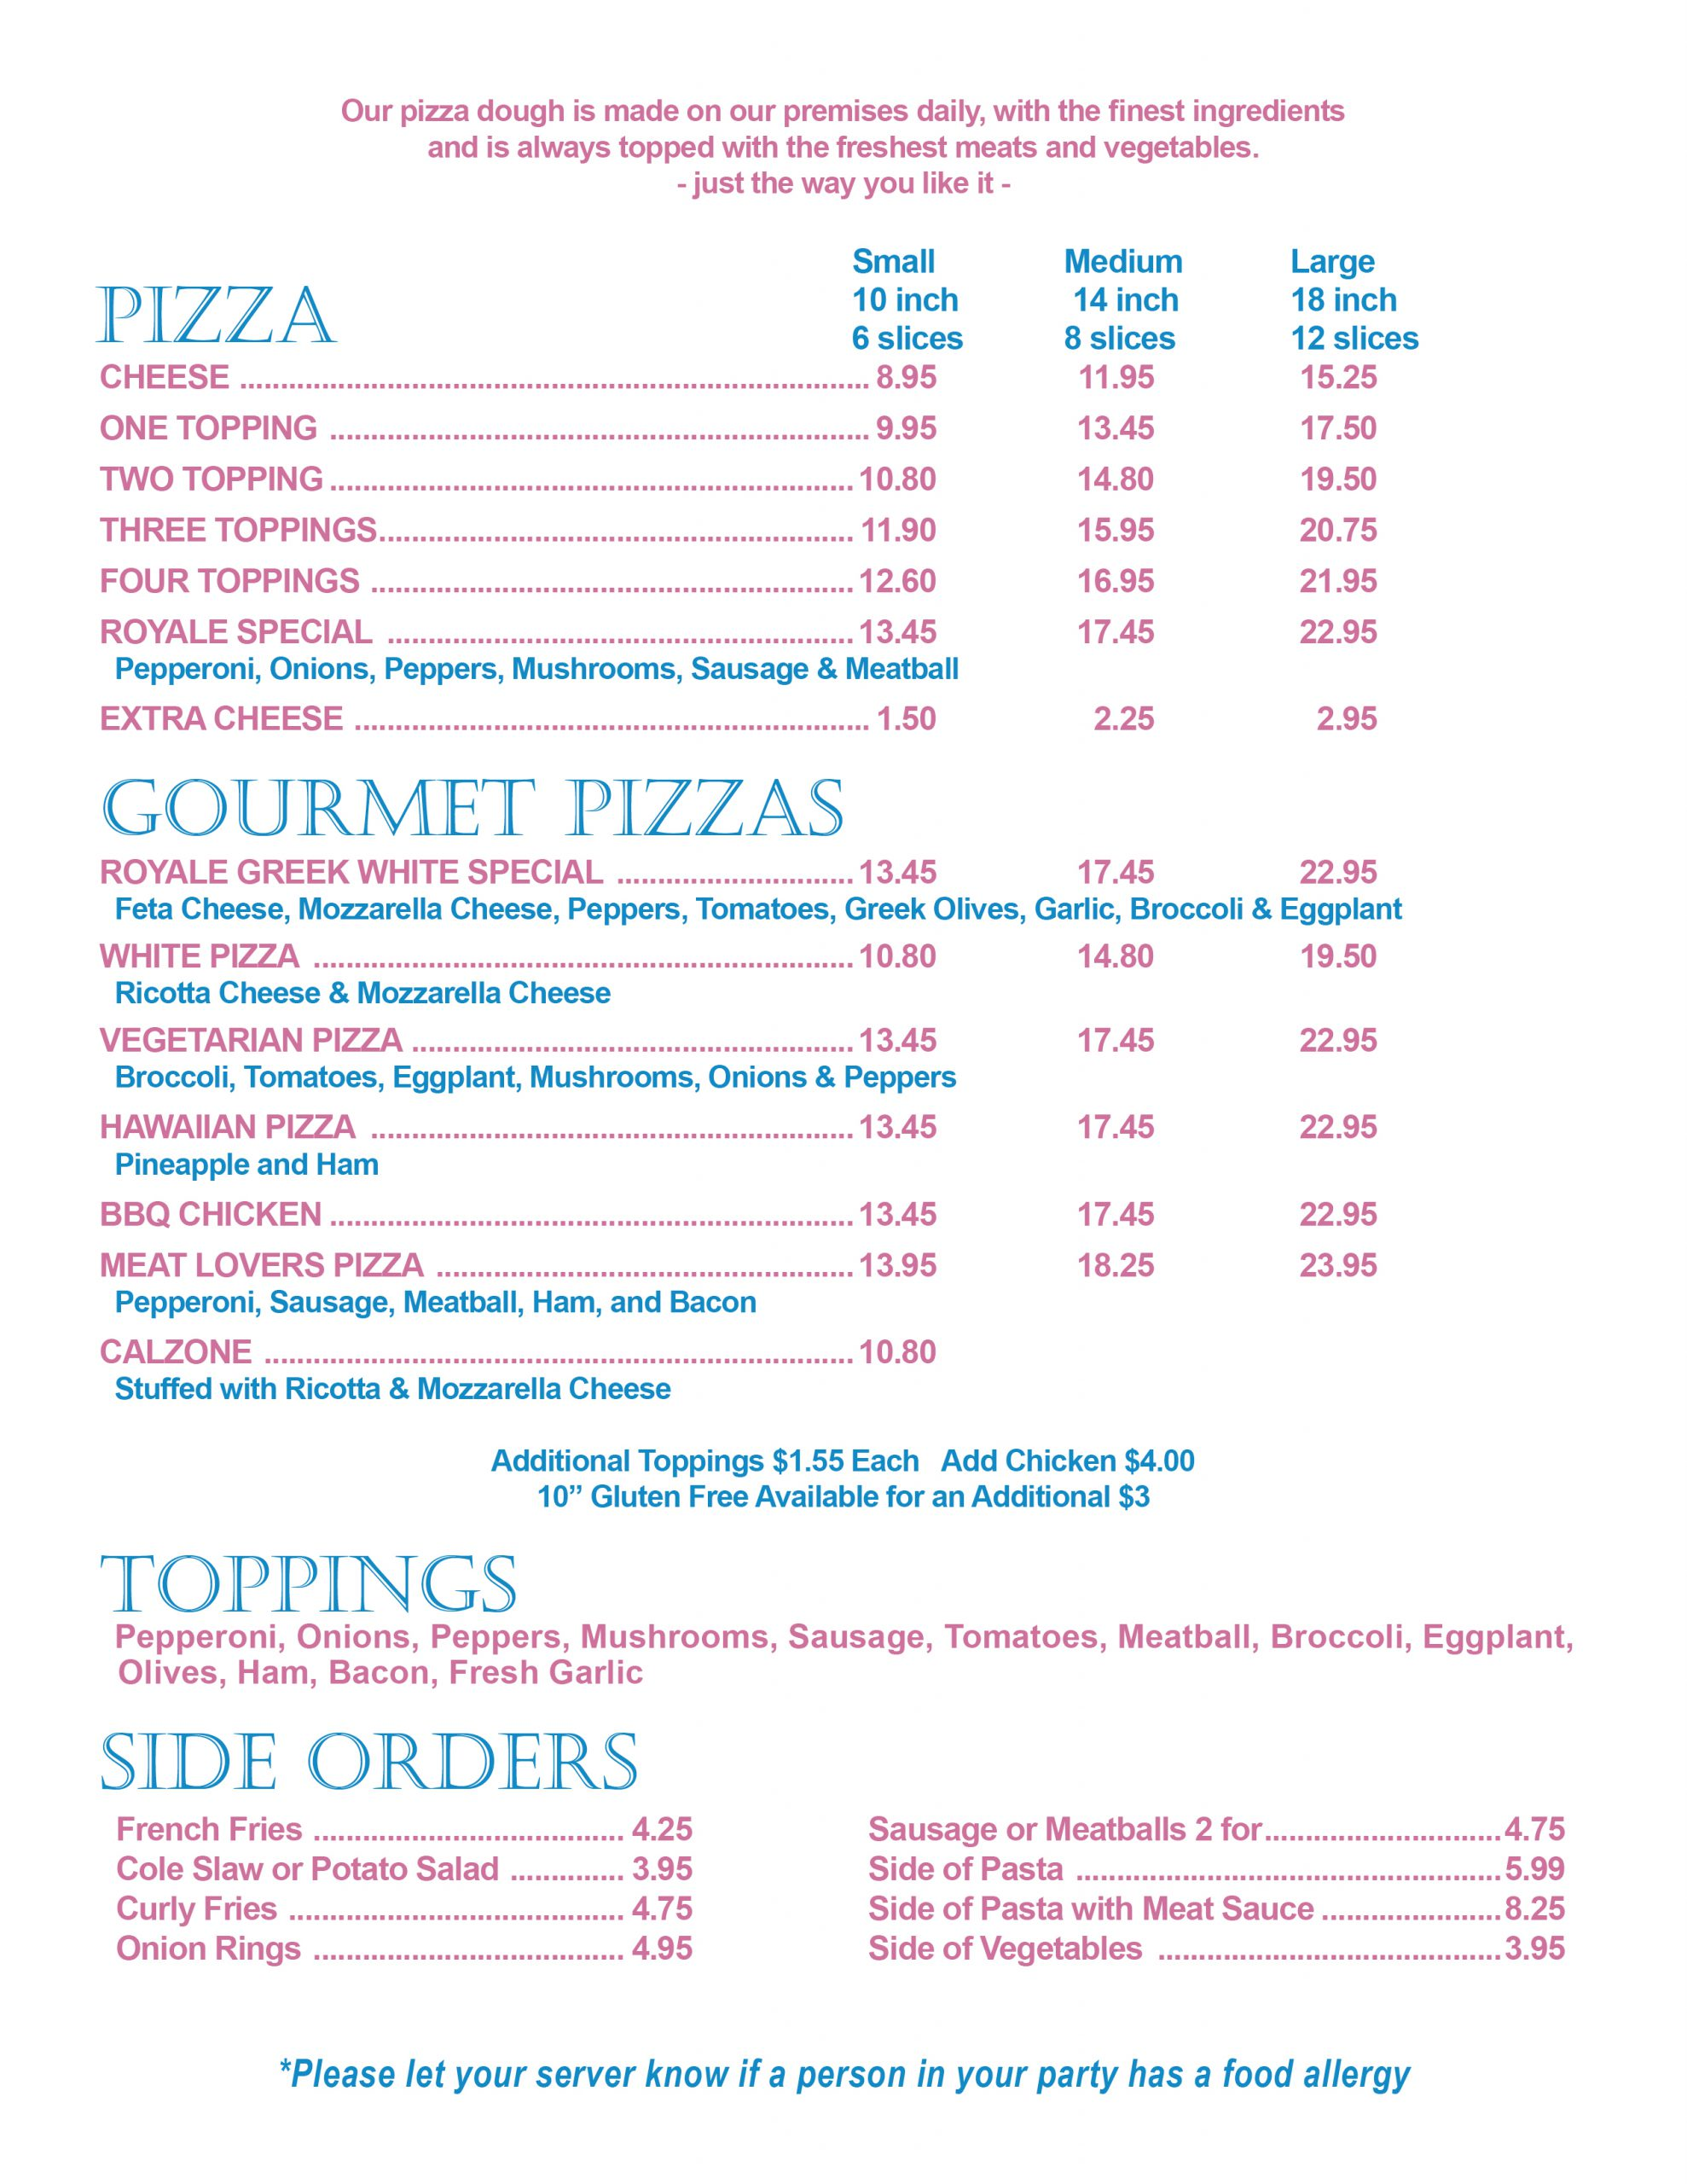 Jimmy D's Pizza Royale Menu Pizza Restaurant Diner Food Near Me